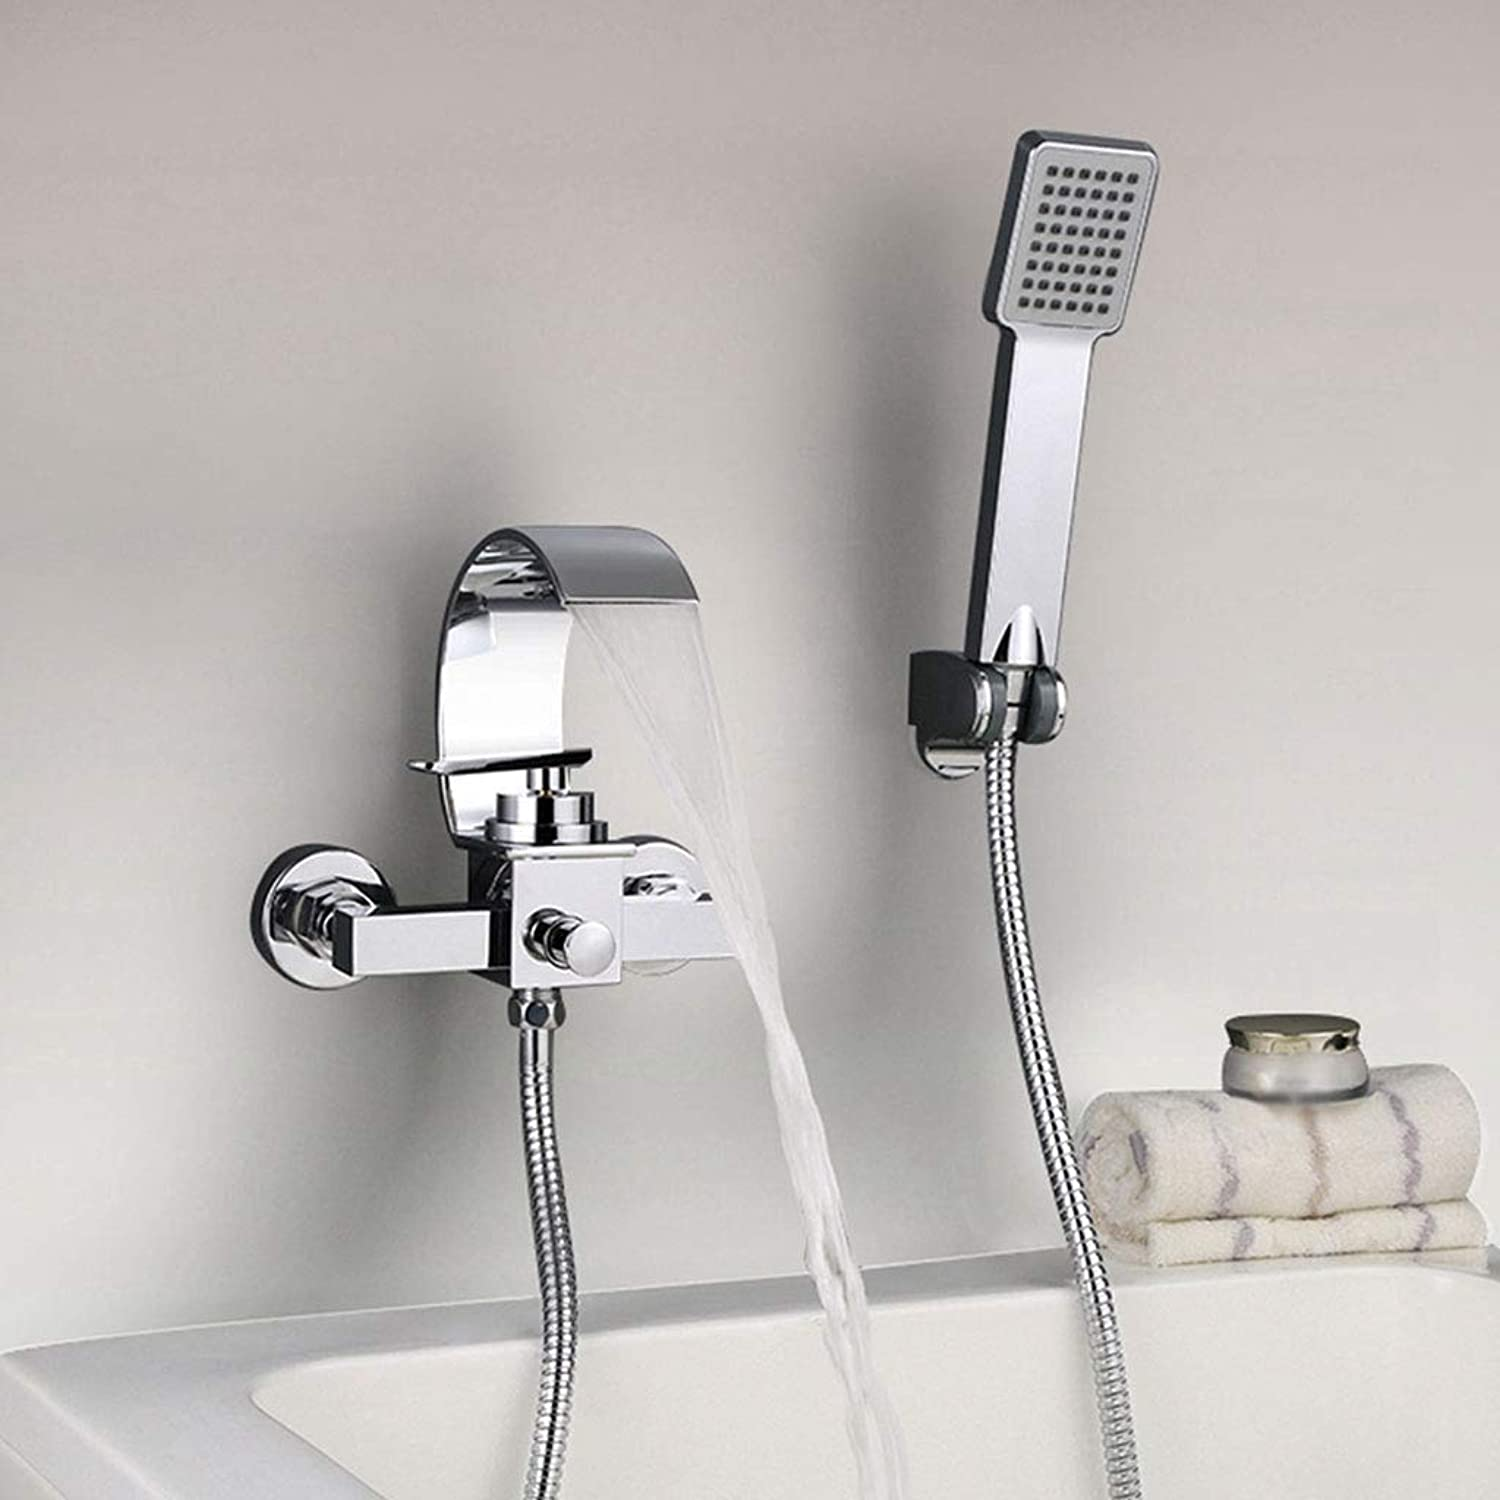 LXKY Faucet - waterfall wall-mounted, triple hot and cold single handle with shower hand-held chrome wall-mounted bathroom